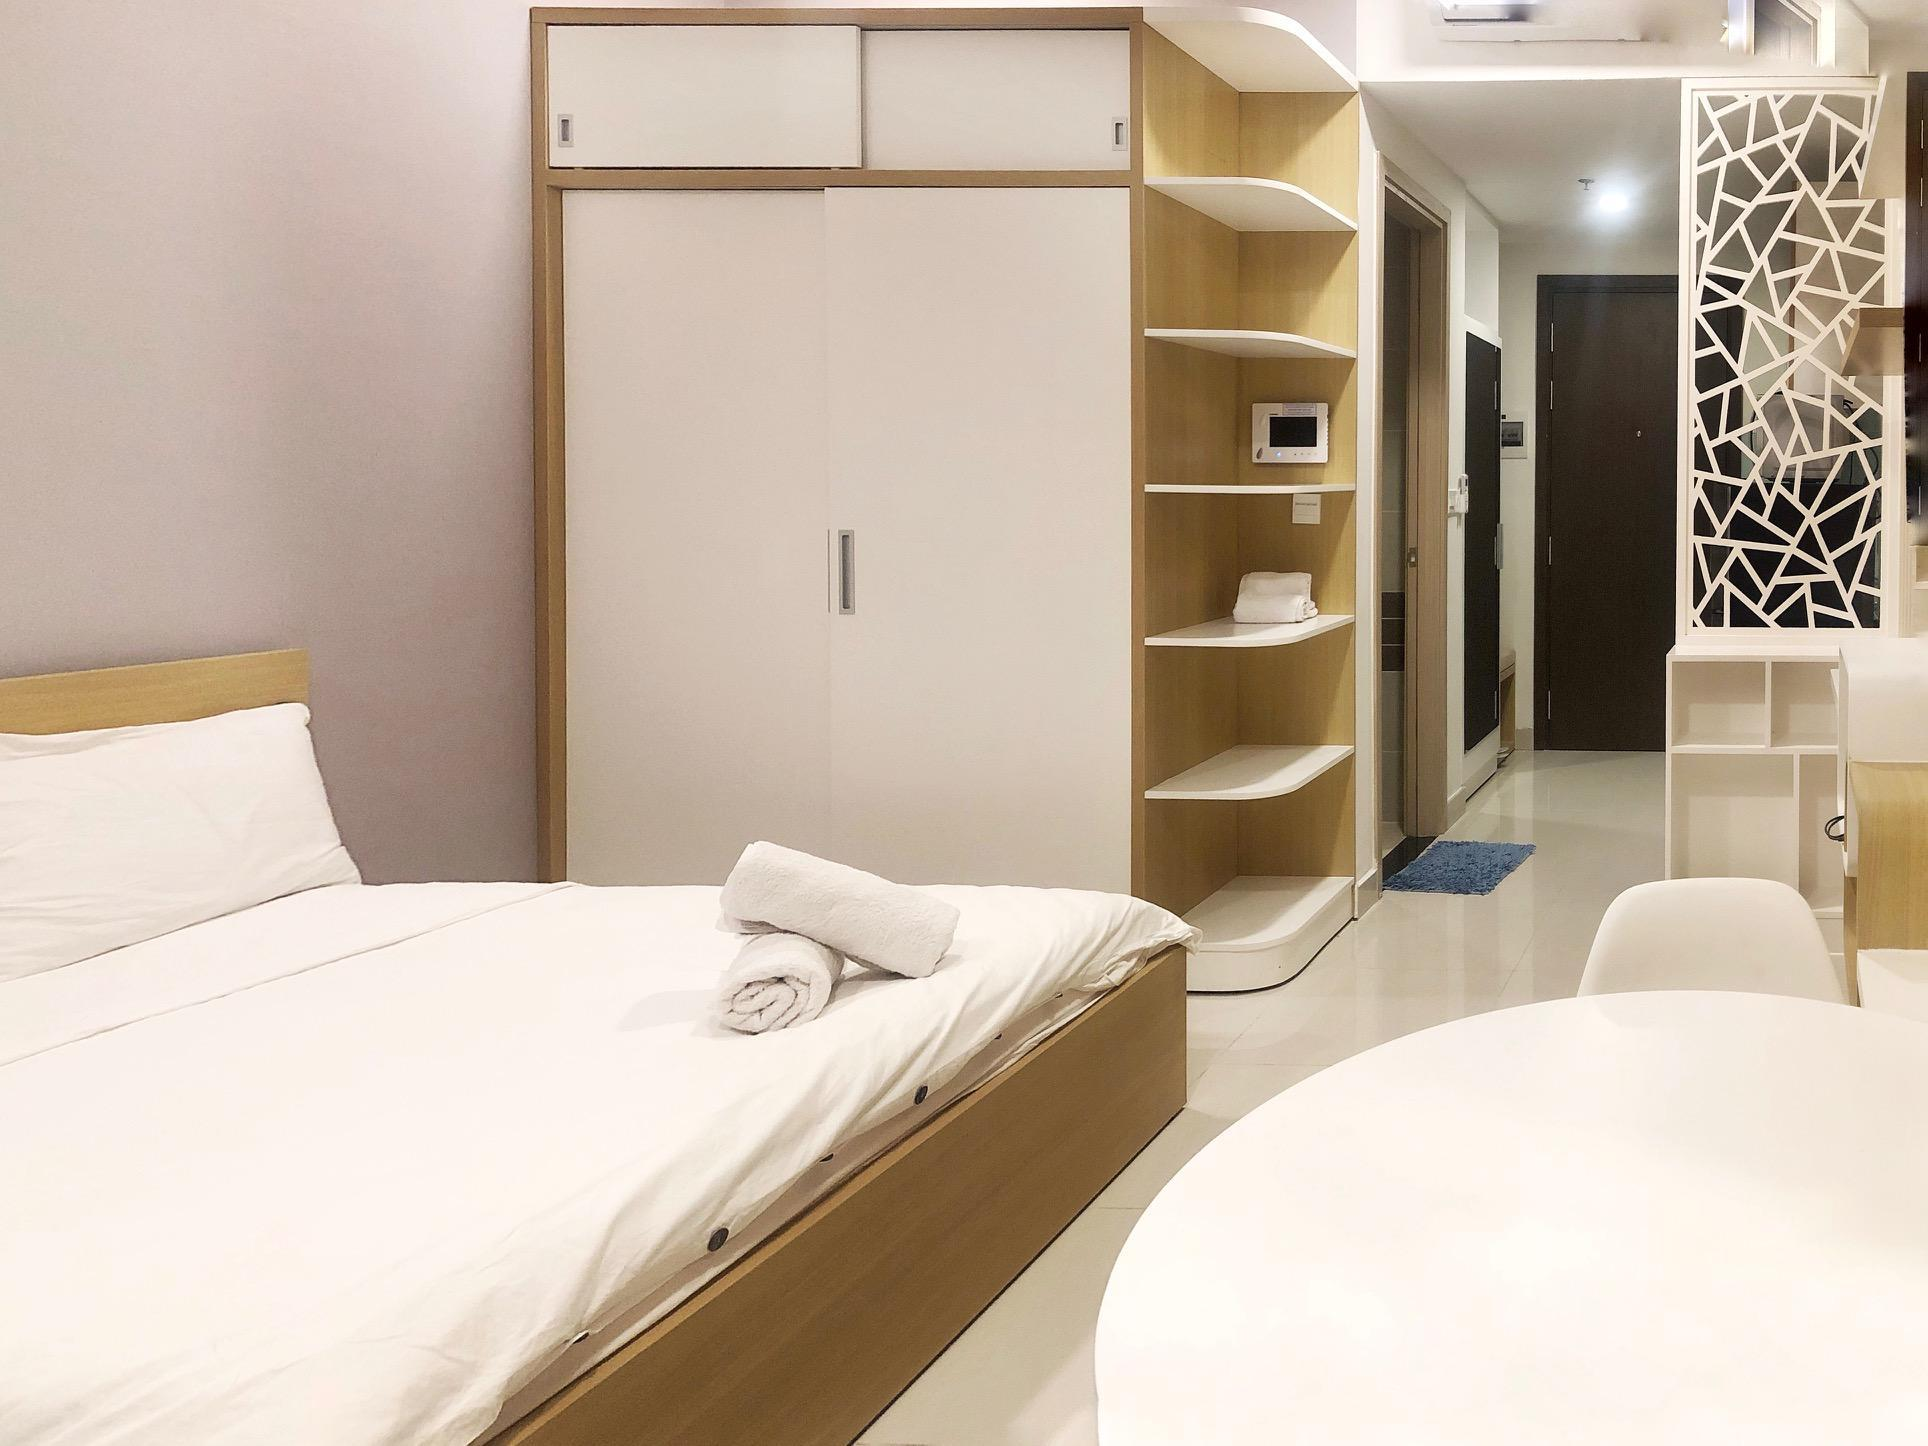 CENTRAL STUDIO For EASY STAY